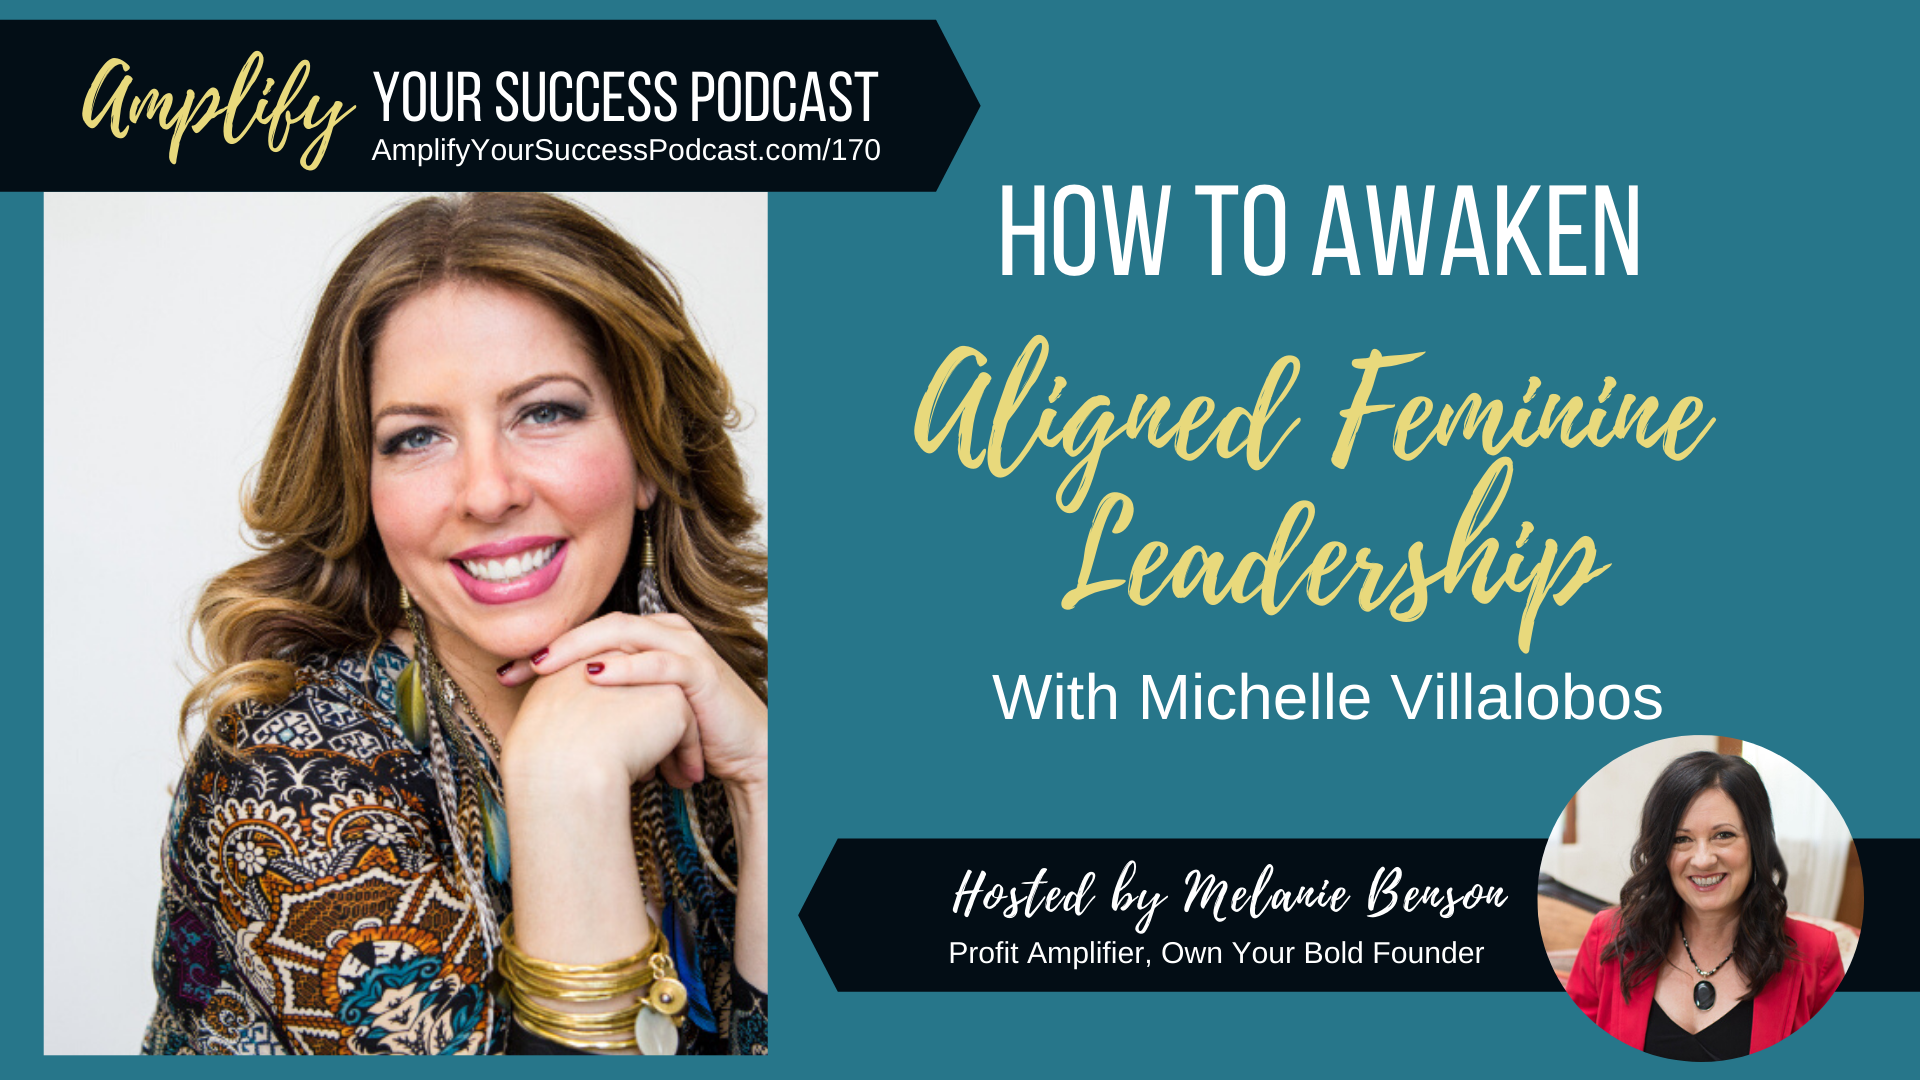 How to Awaken Aligned Feminine Leadership with Michelle Villalobos on Amplify Your Success Podcast Episode 170 with Melanie Benson